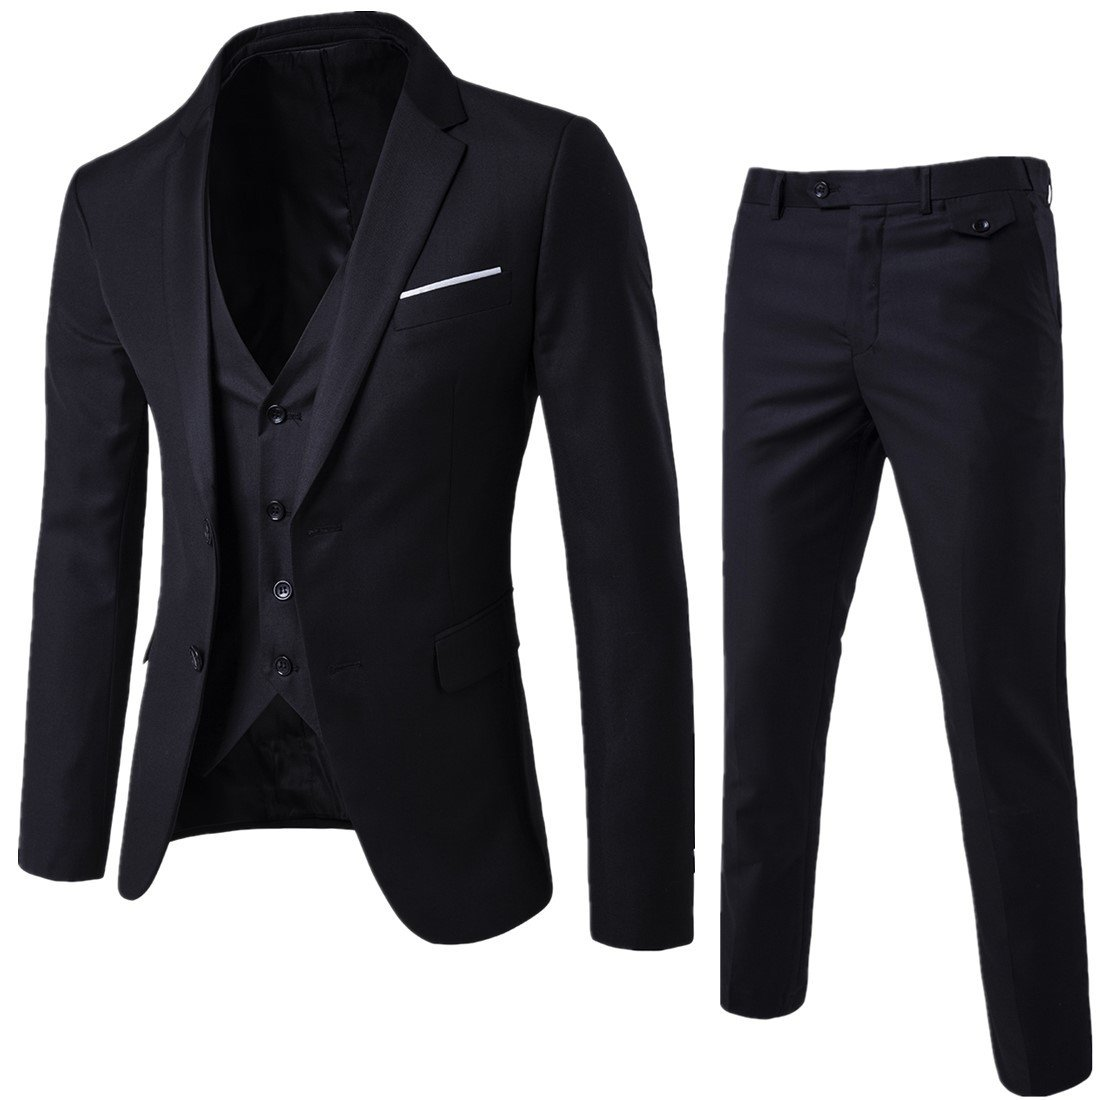 9b6dd6b35529 WEEN CHARM Mens Suits 2 Button Slim Fit 3 Pieces Suit at Amazon Men's  Clothing store: